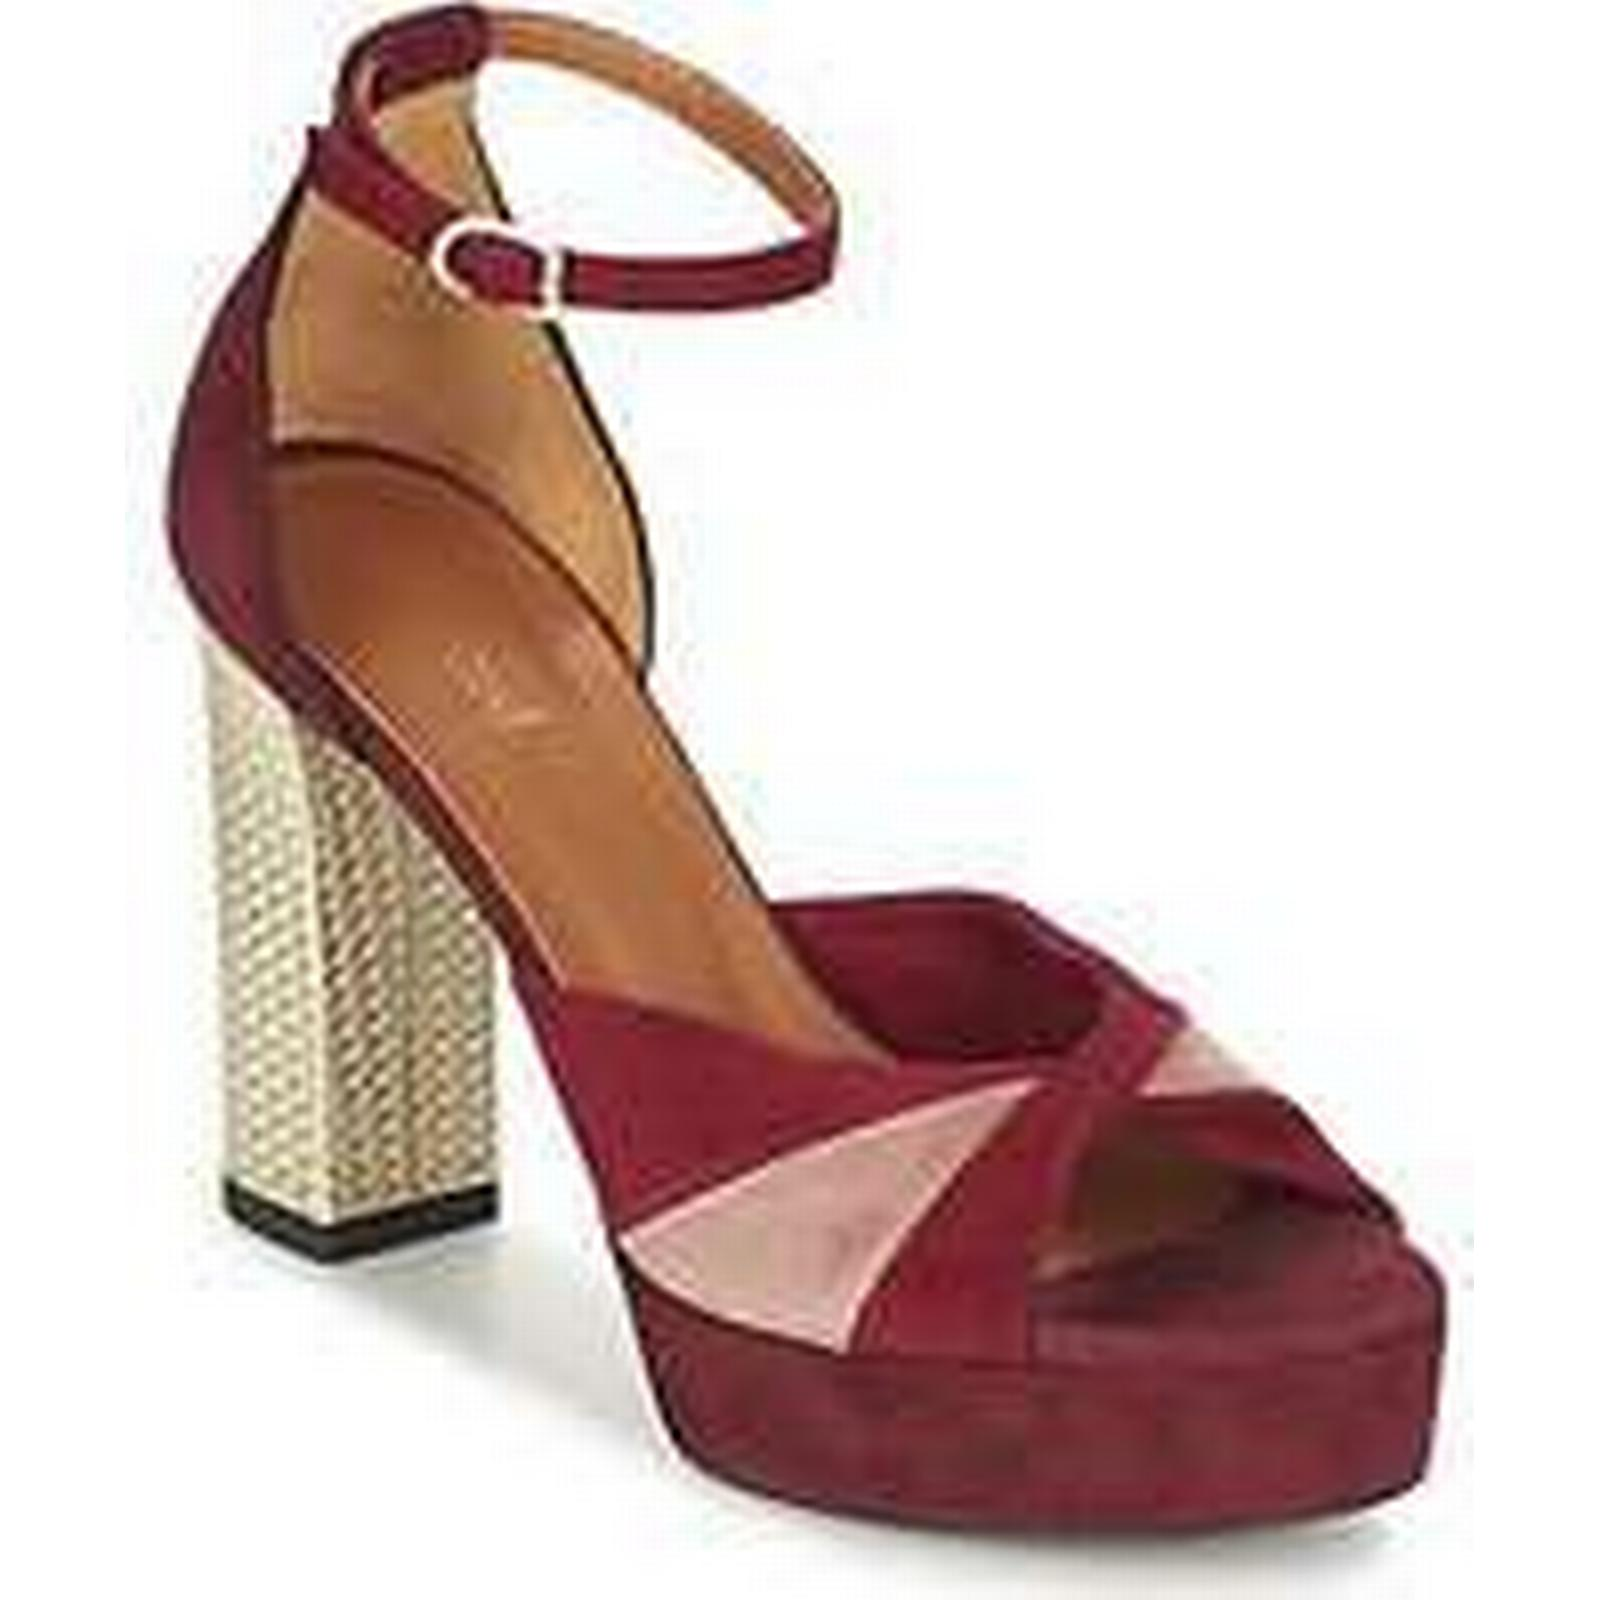 Spartoo.co.uk in Heyraud EVELINE women's Sandals in Spartoo.co.uk Red 7ea3b9